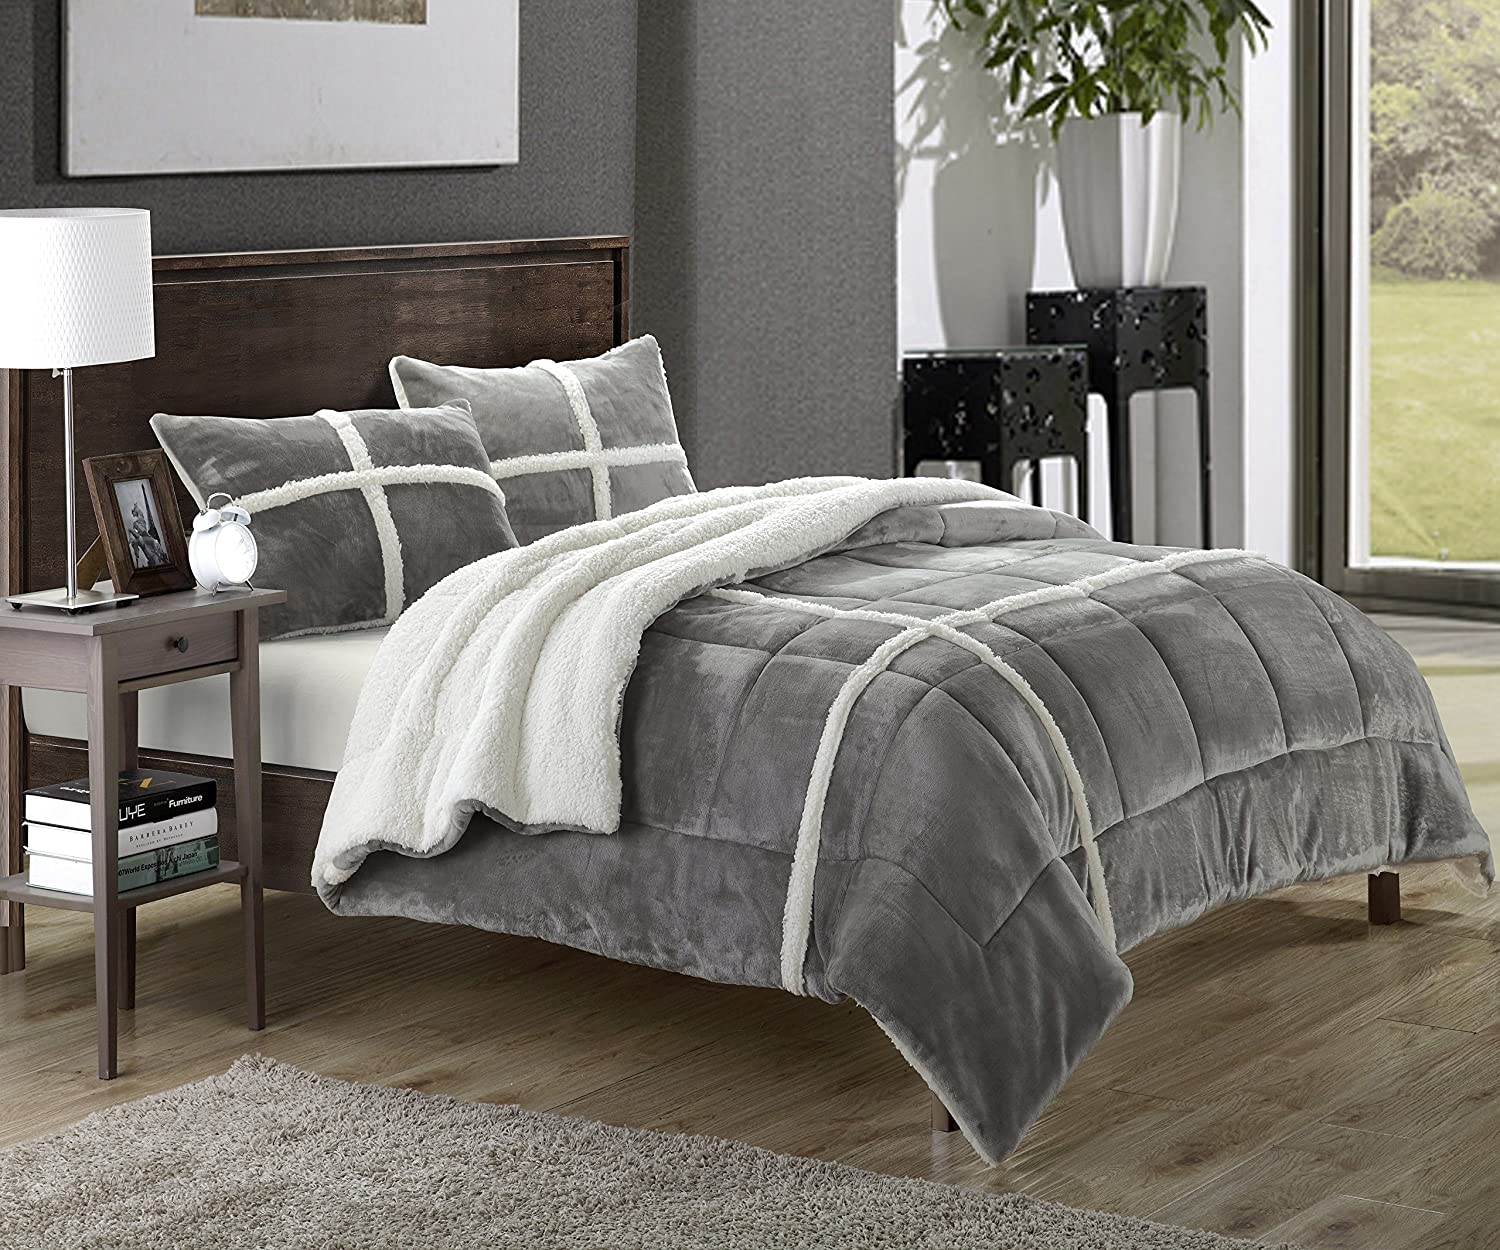 Amazon com chic home 3 piece chloe comforter set king silver home kitchen